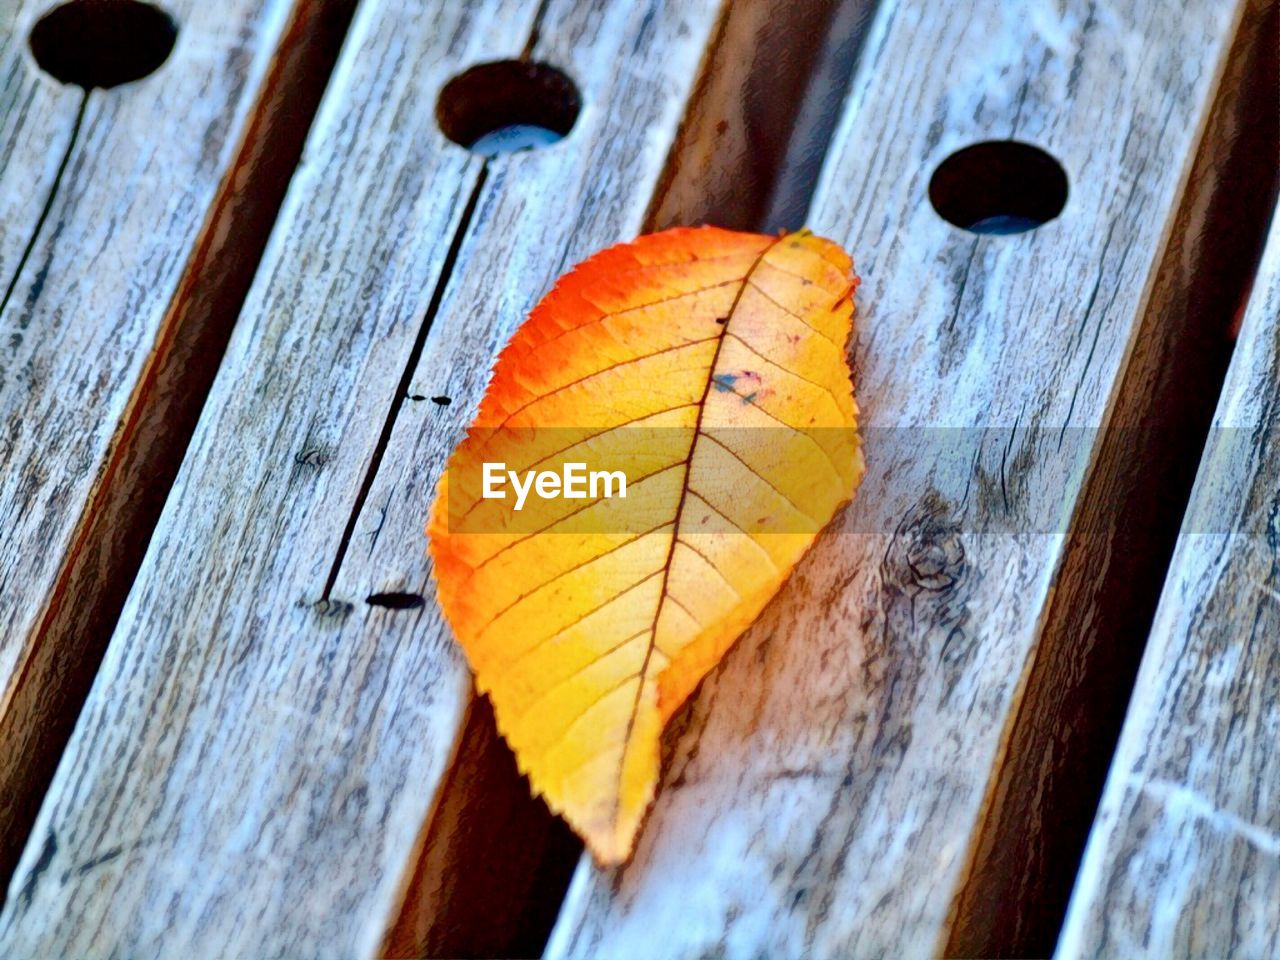 wood - material, close-up, no people, leaf, change, plant part, day, autumn, orange color, nature, selective focus, textured, dry, outdoors, pattern, plank, high angle view, bench, leaf vein, yellow, leaves, natural condition